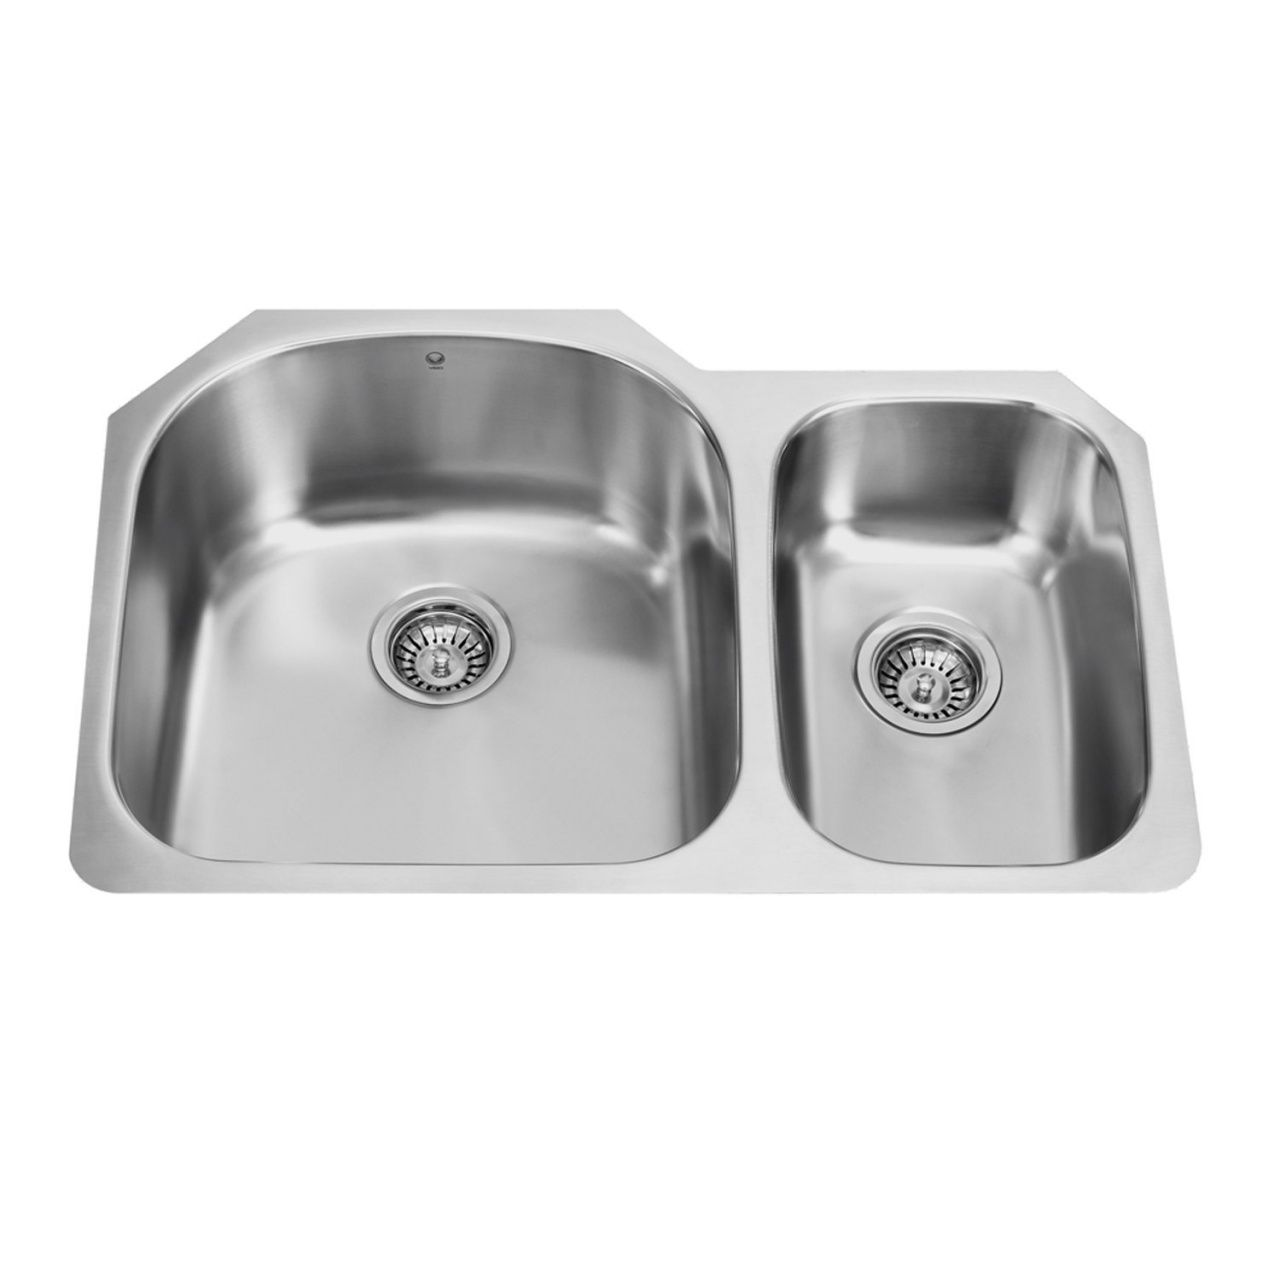 Kitchen Sink Size For 30 Inch Cabinet In 2020 Stainless Steel